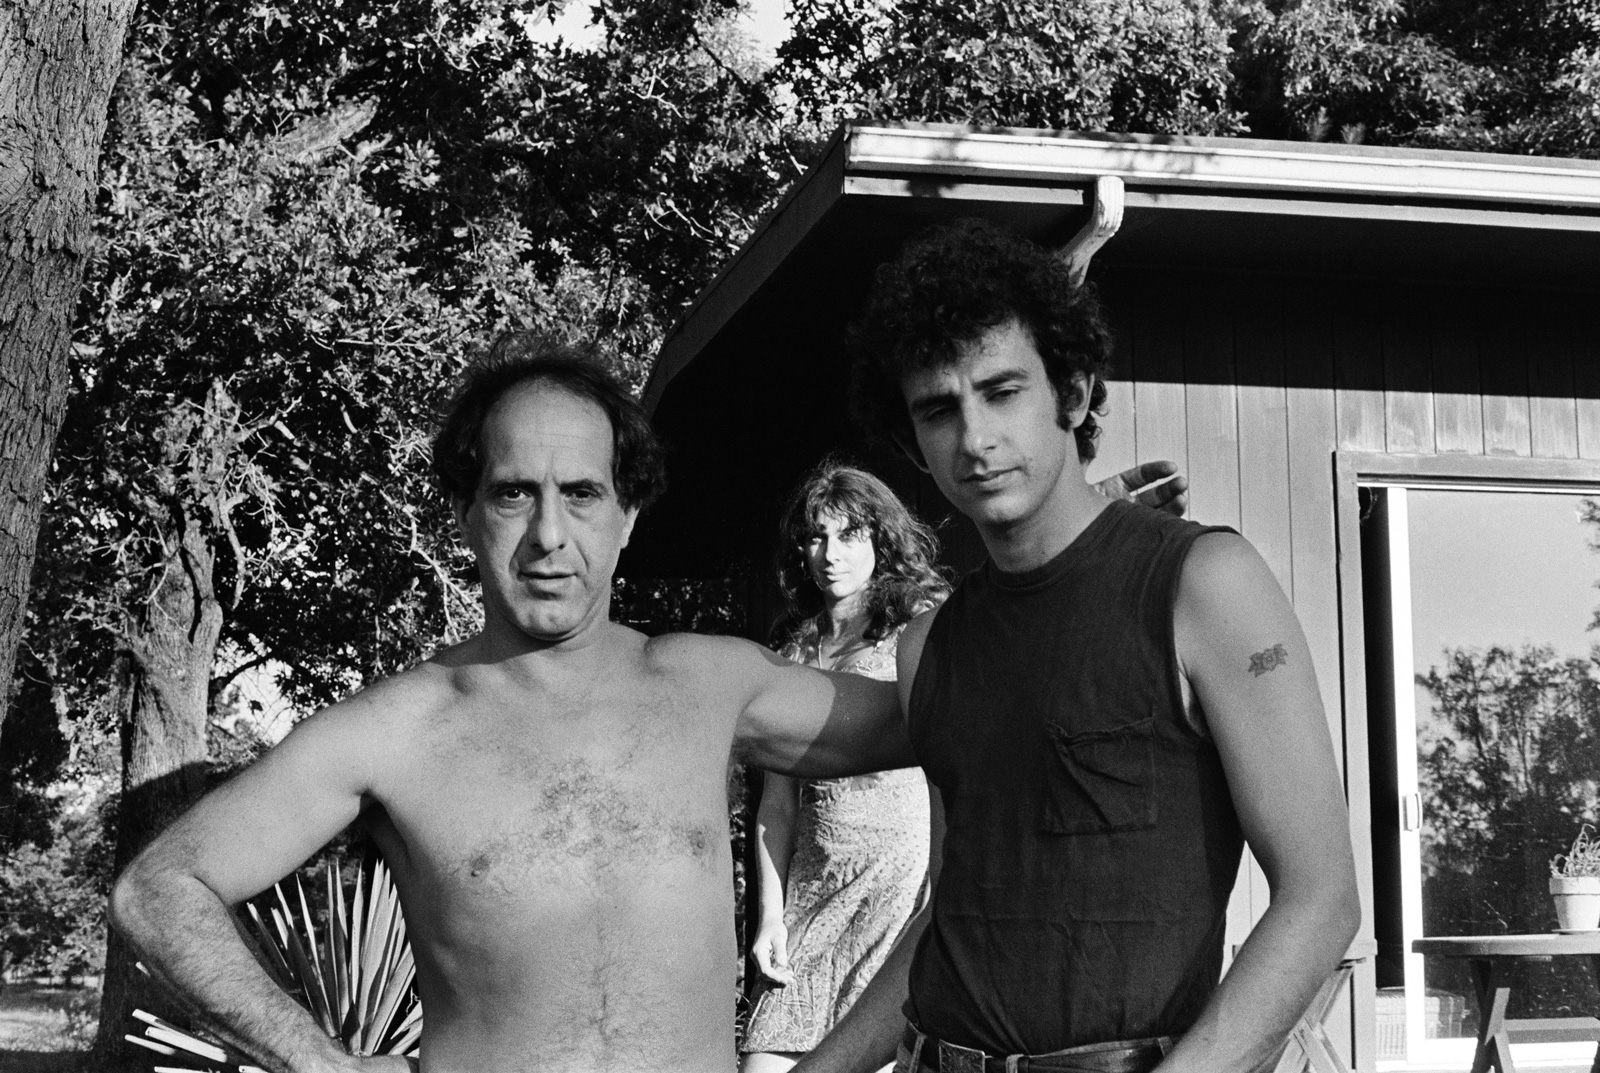 Robert Frank and the author, with Mary Frank in the background, Midway, Texas, 1968